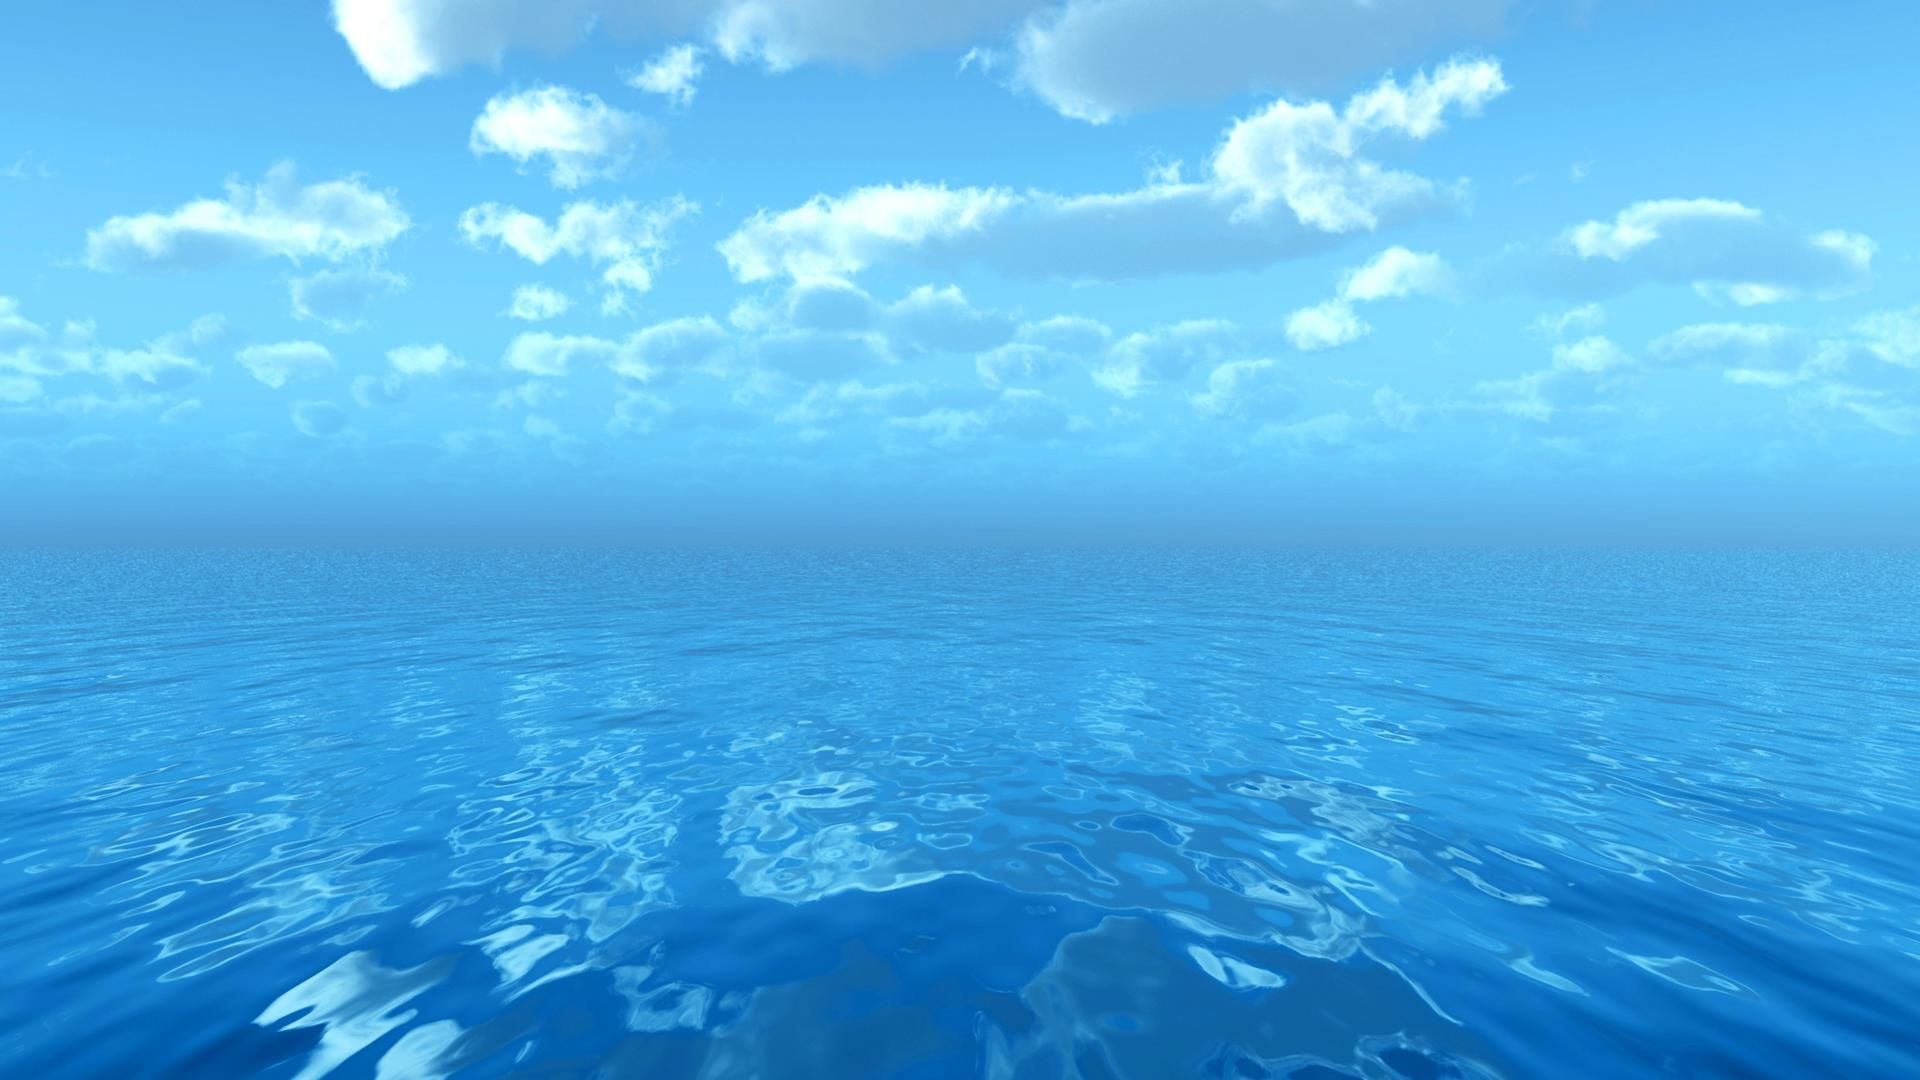 High Resolution Ocean Wallpaper 1920X1080 For more pictures visit